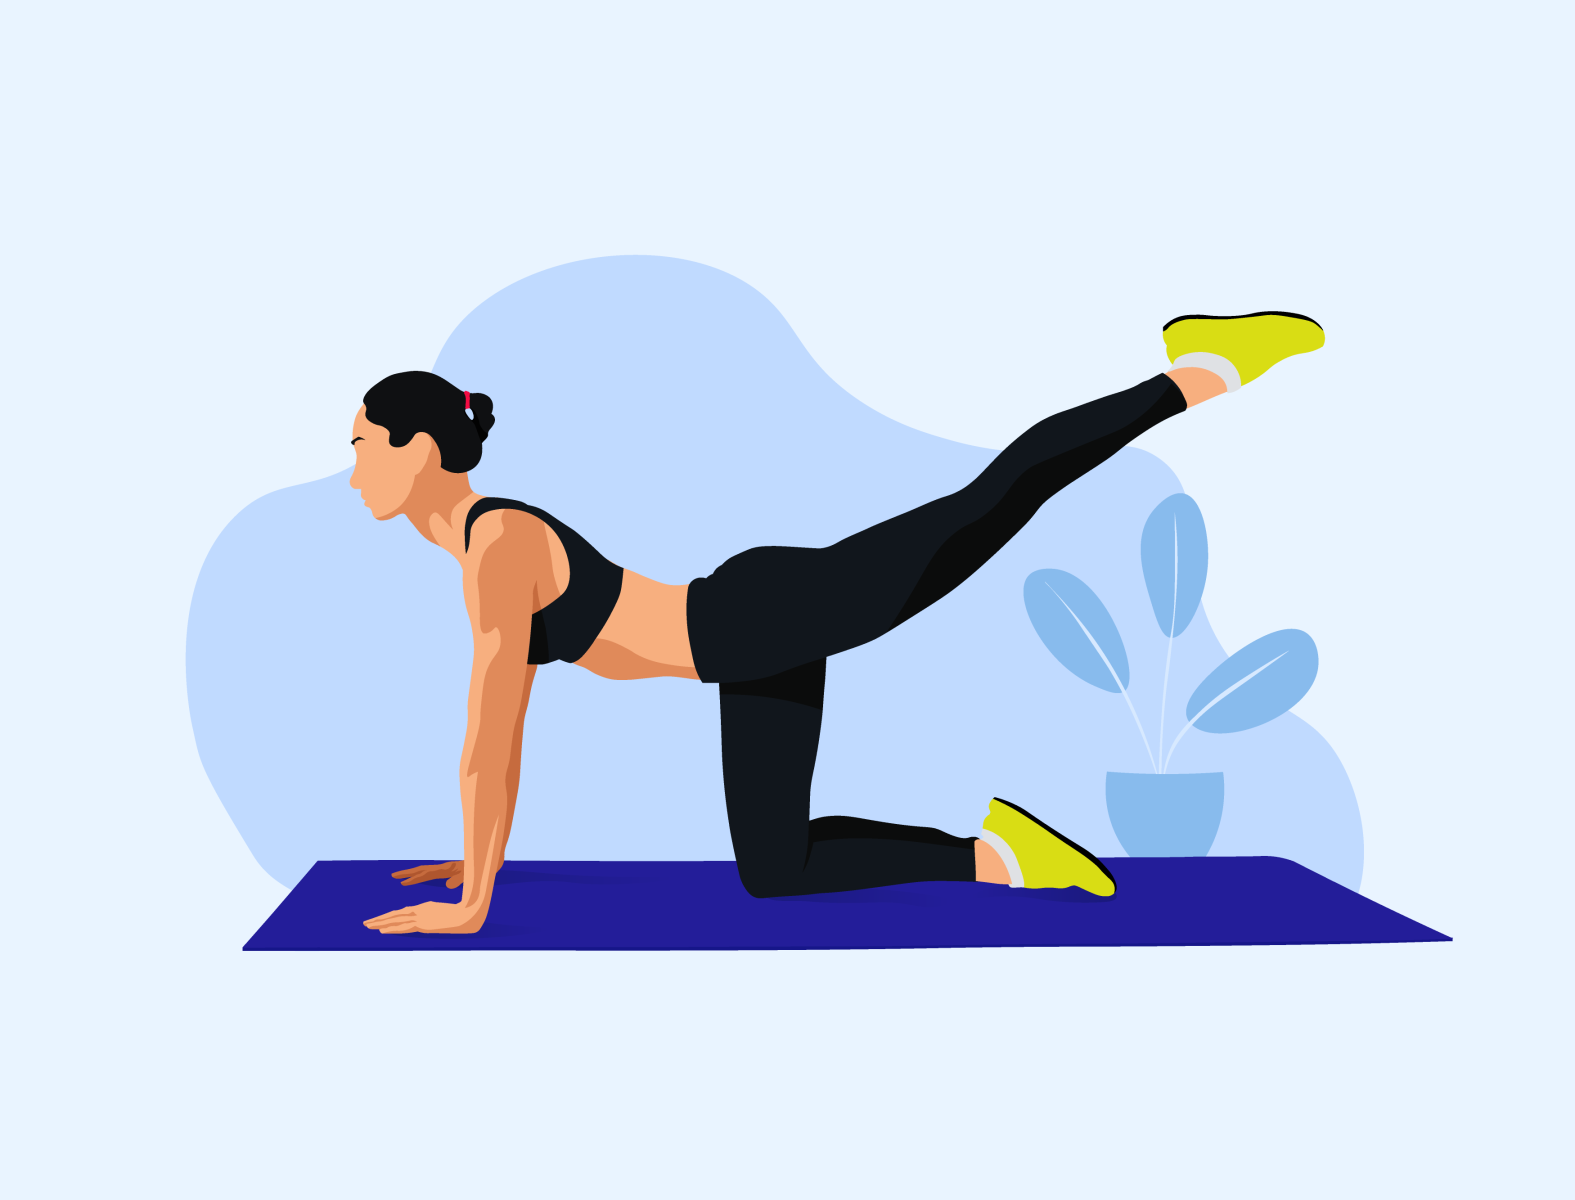 Workout Woman Illustration - Stay Safe & Healthy   Sports illustrations  art, Woman illustration, Sport illustration